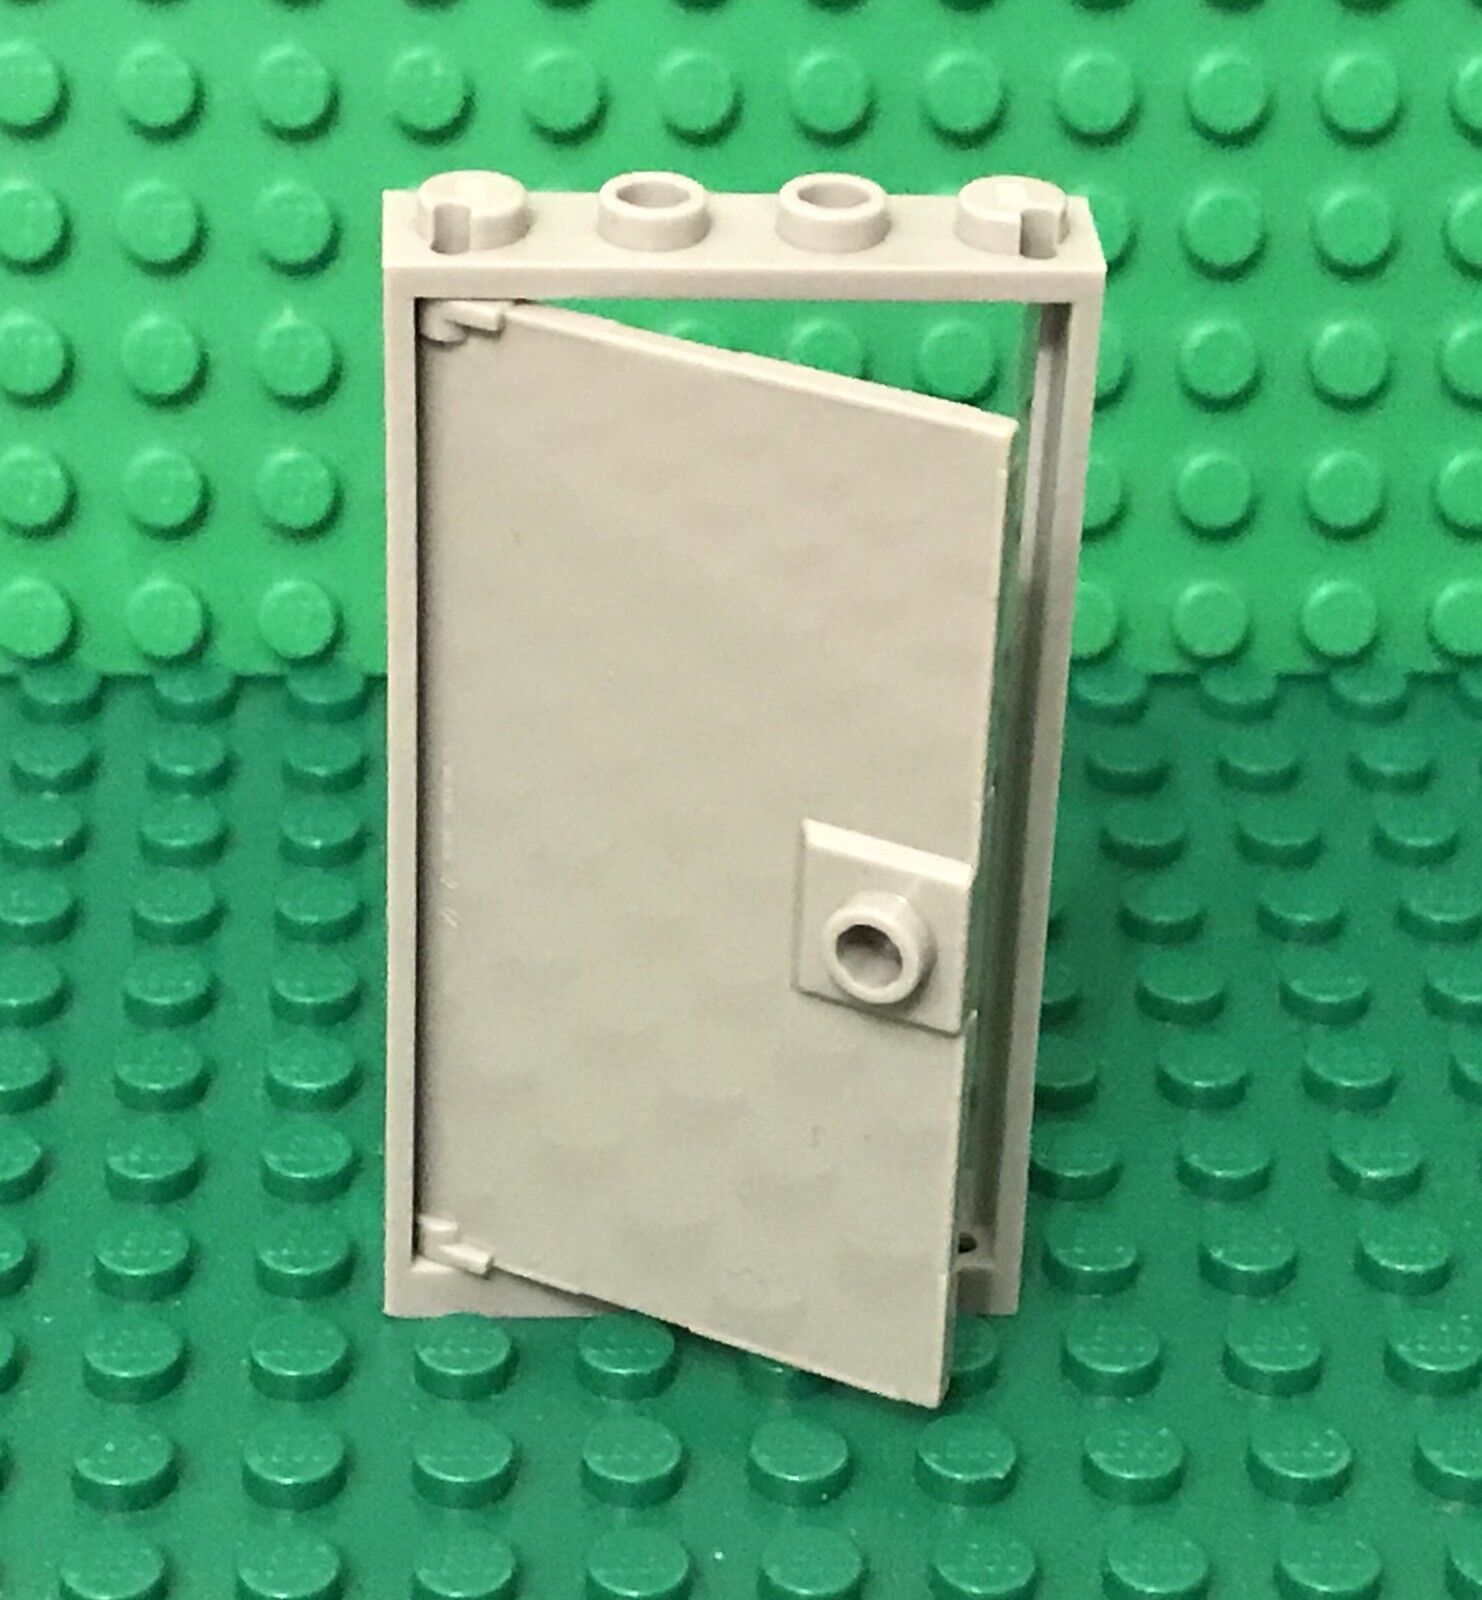 2825 Lego ® 10x Technic-Liftarm LIFT ARMS 1x4-with connectors-Light Grey